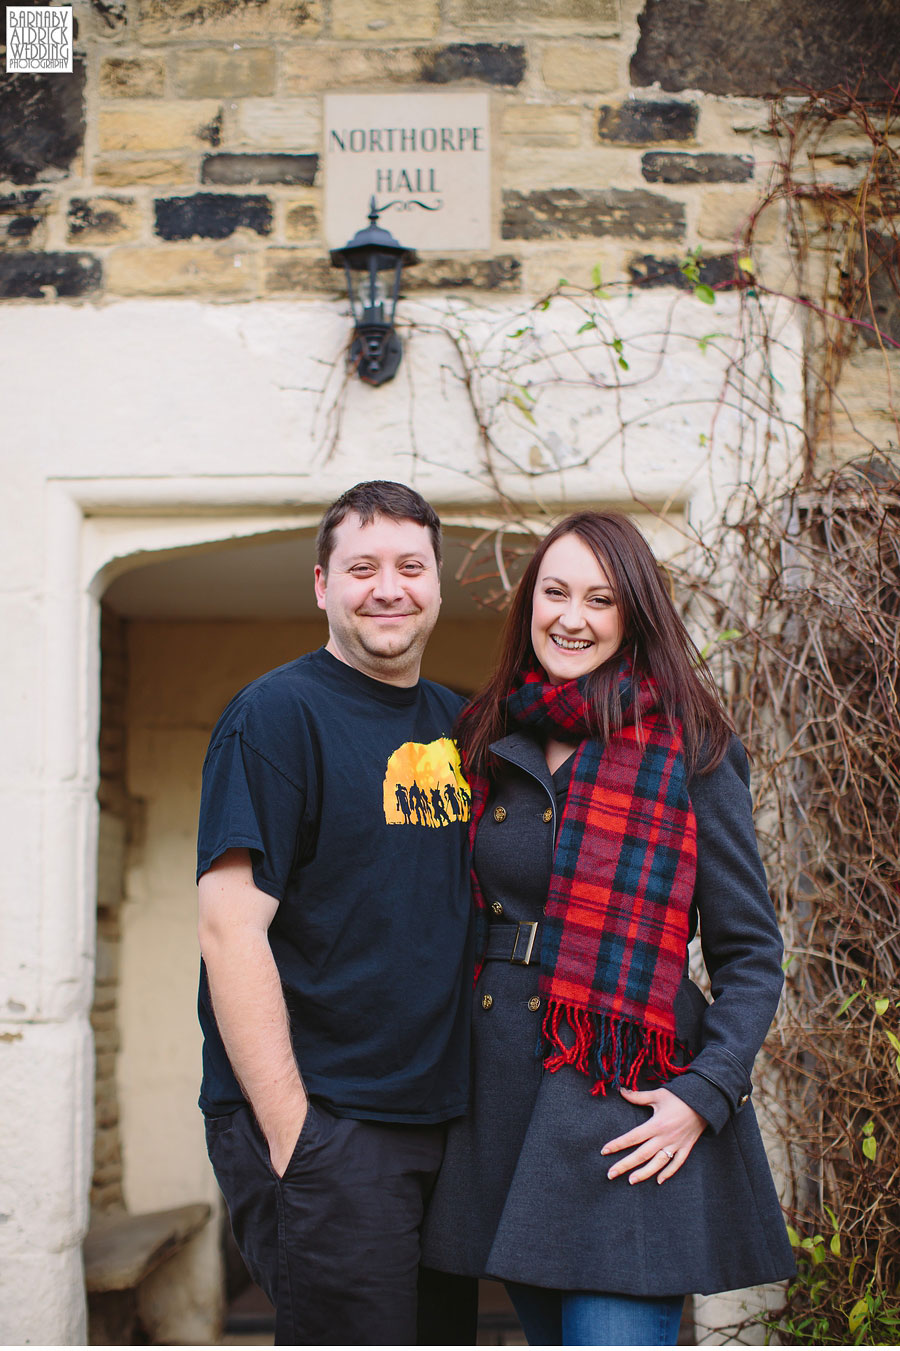 Pre-wedding photography at Northorpe Hall in Mirfield